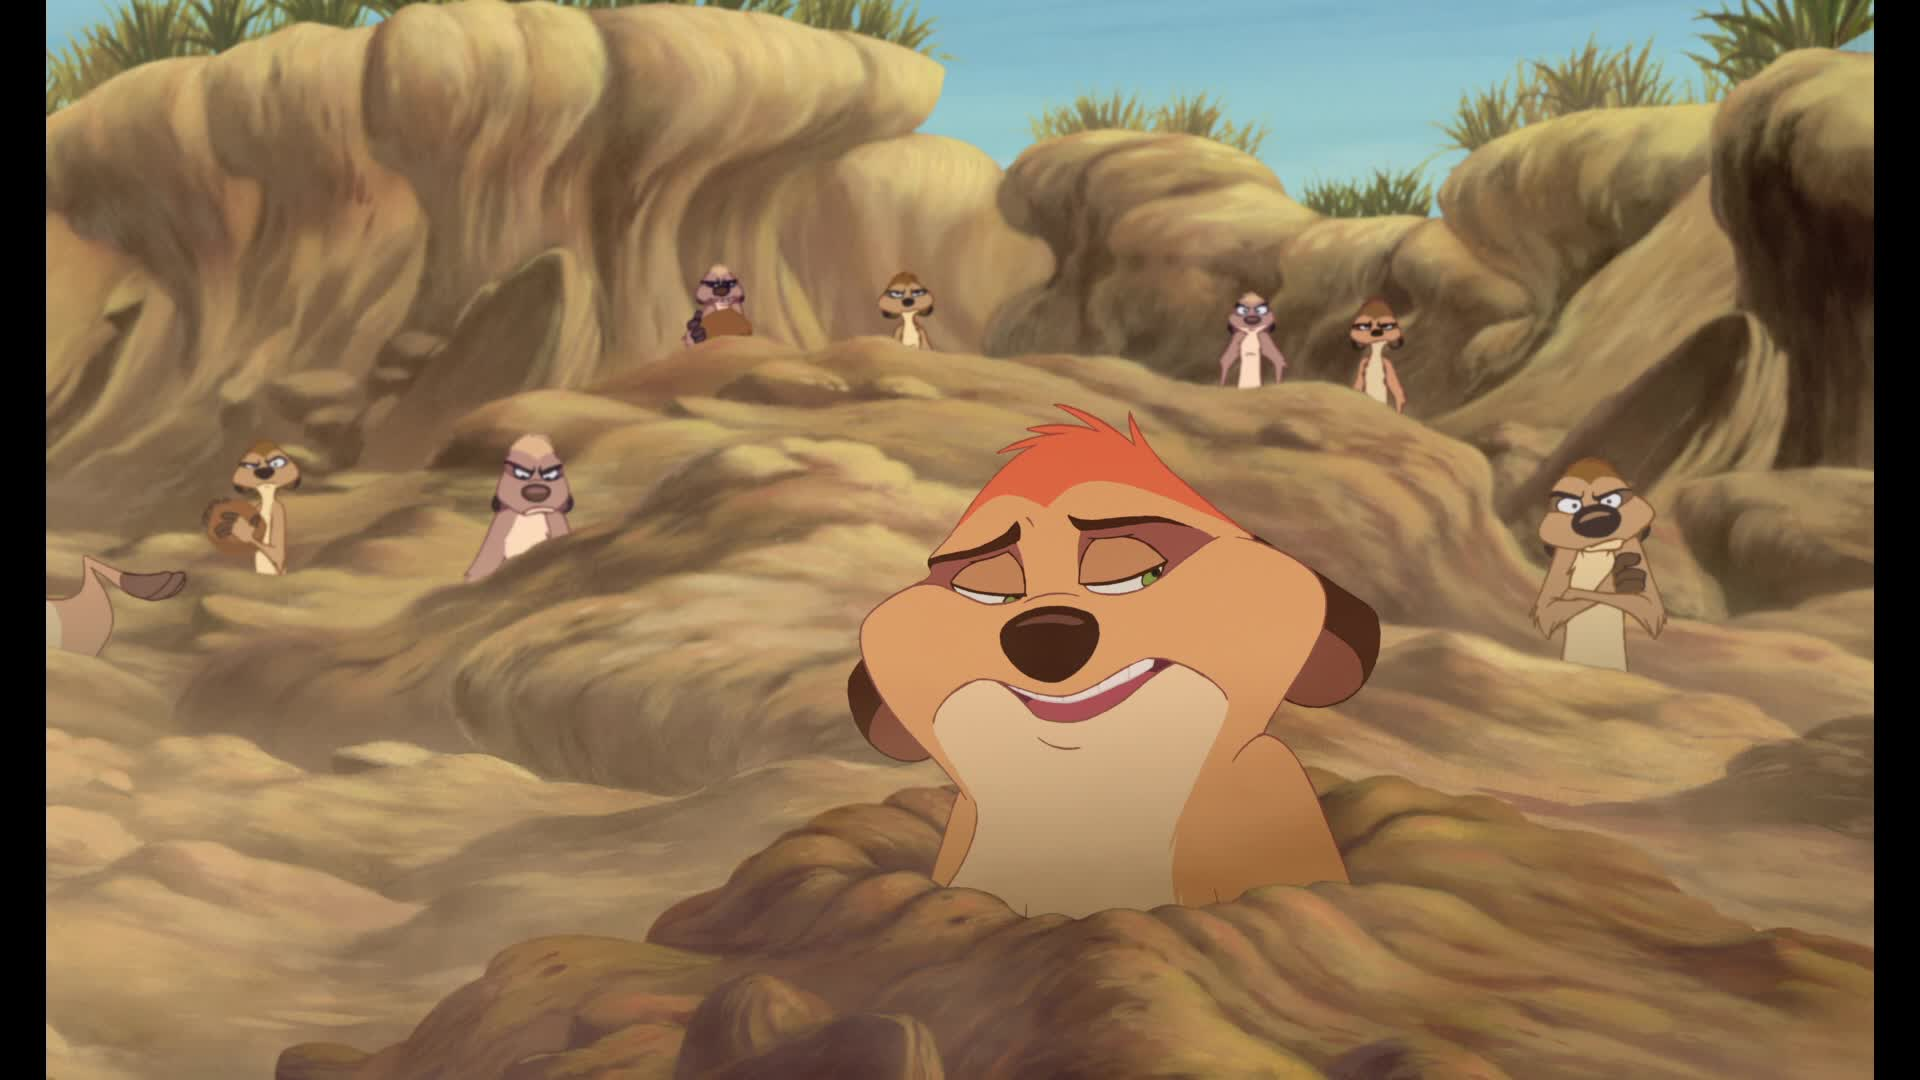 film techniques the lion king Fxg: central to the conversion of the lion king was the 'depth score' you made,   we watched the film a couple of times, once with sound and then again with  fxg : one of the interesting techniques i've read that you used to.